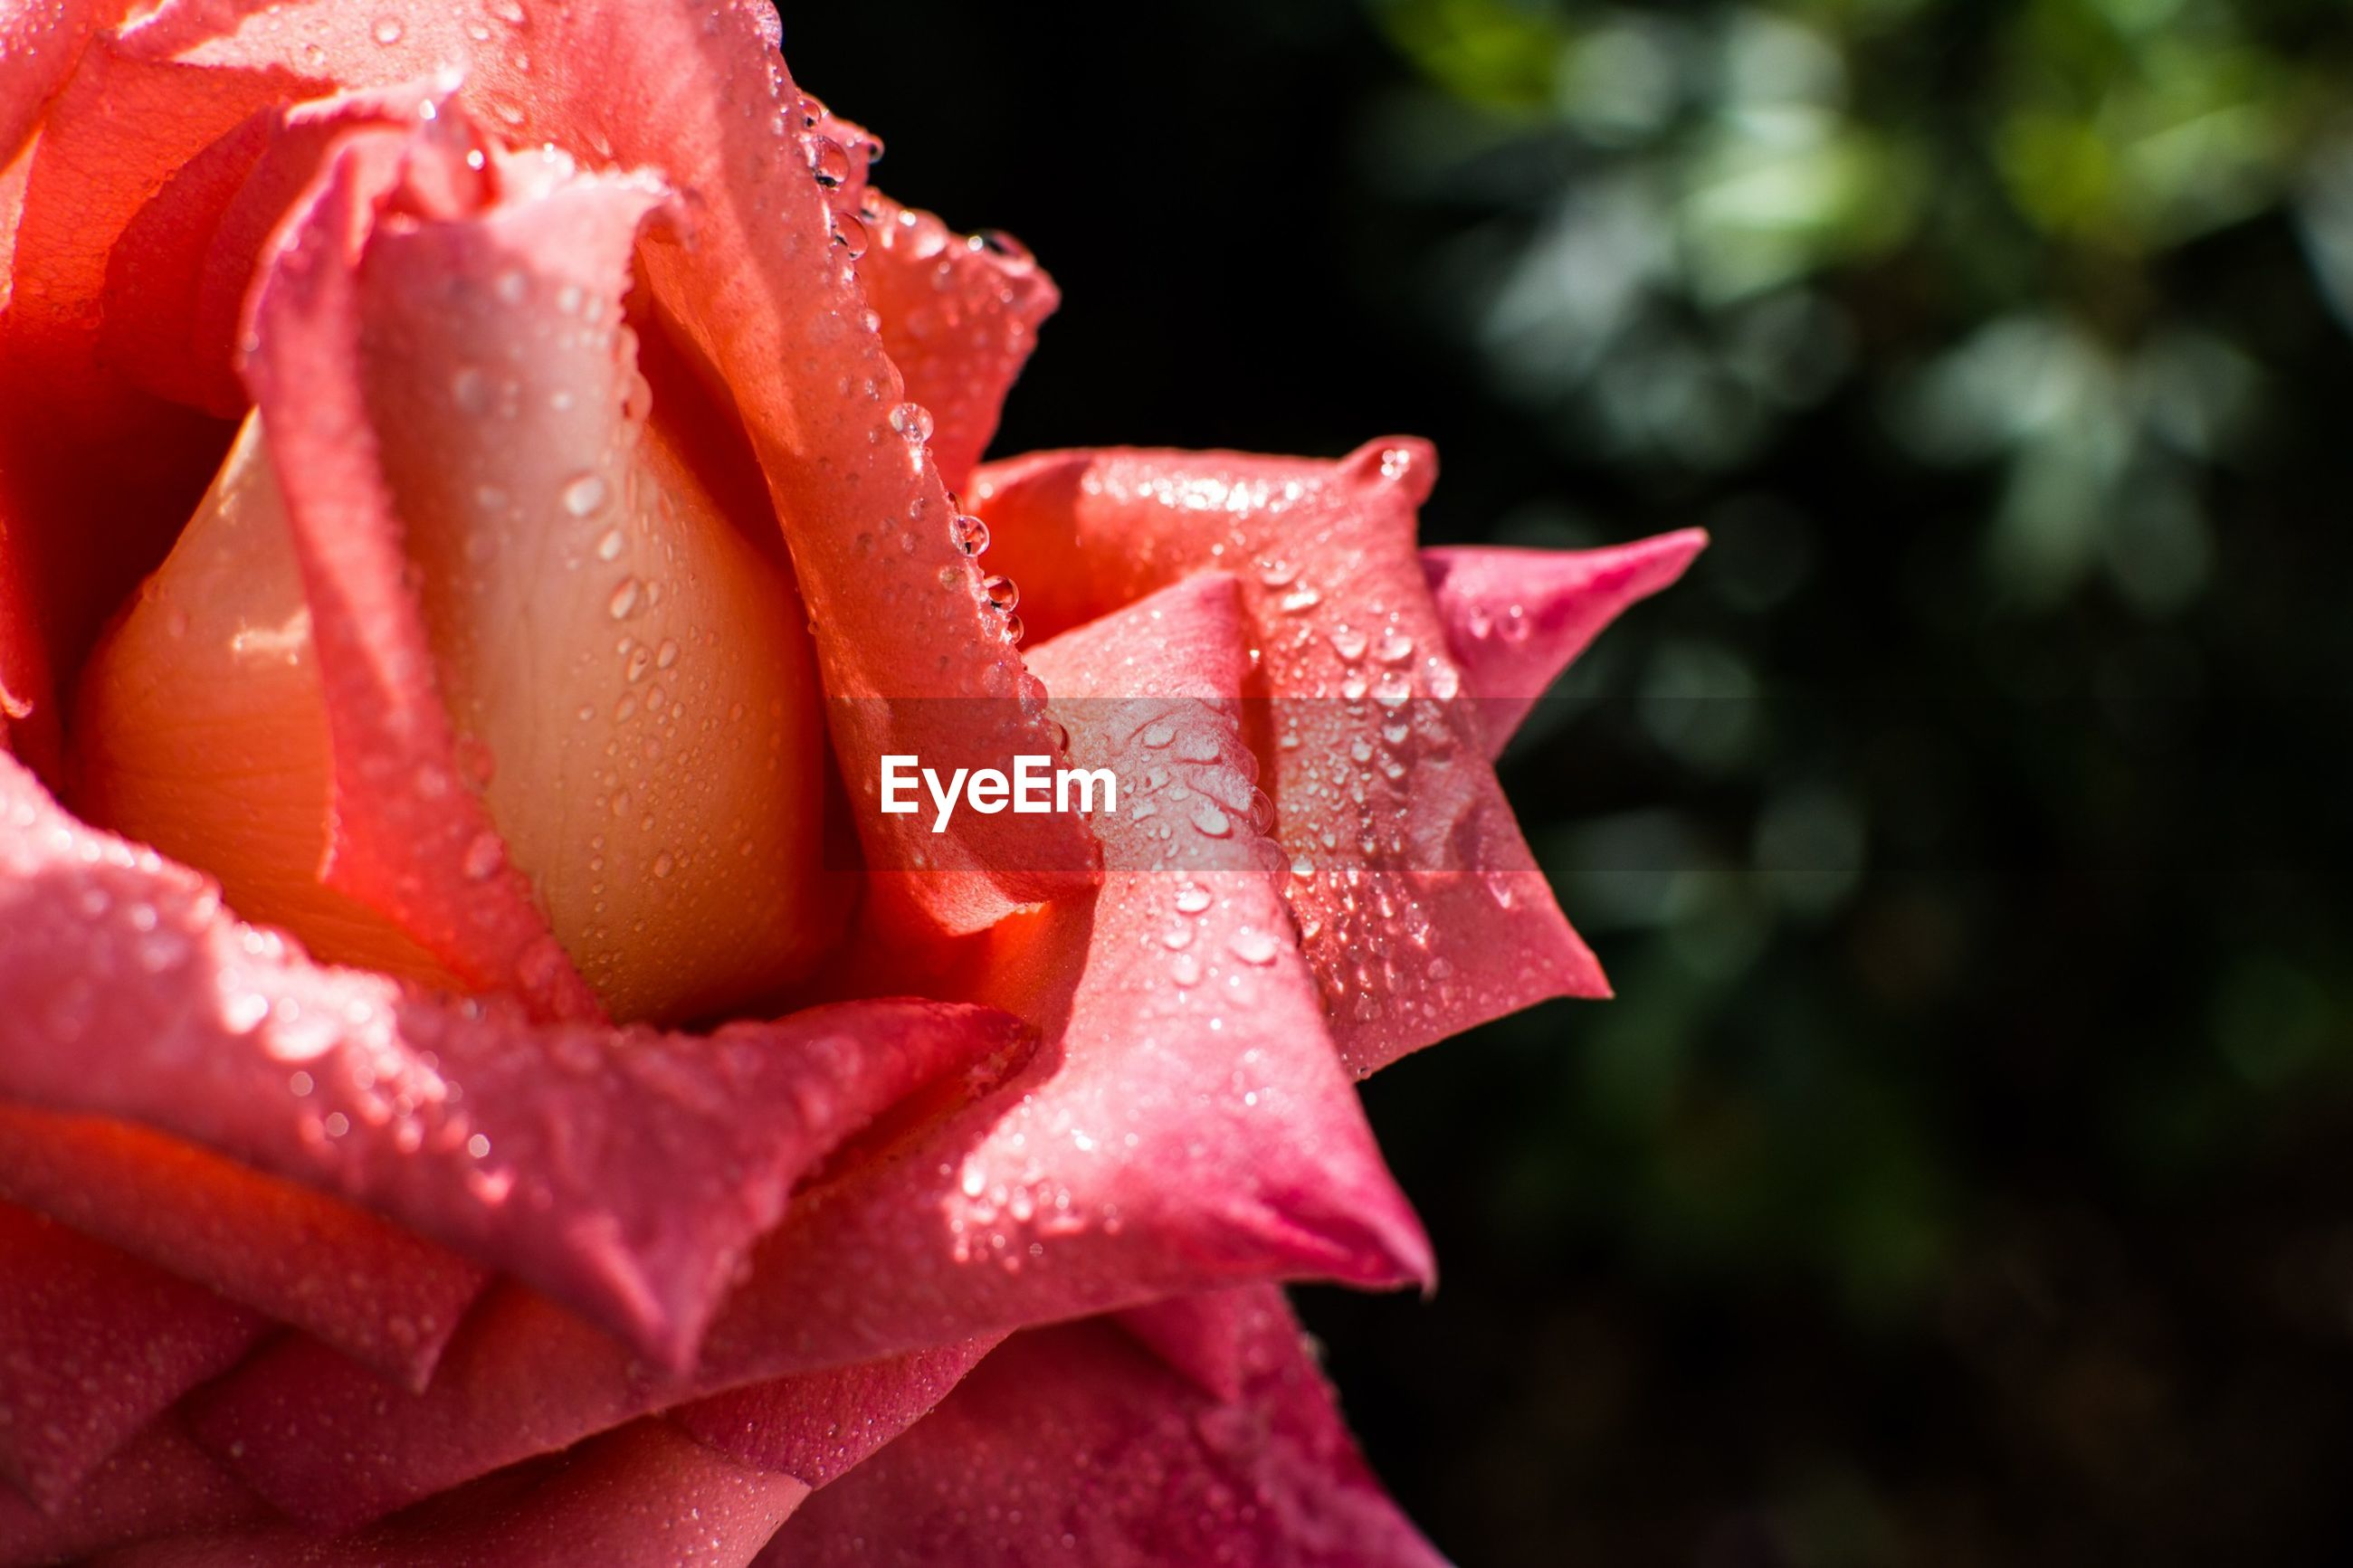 petal, flower, drop, freshness, flower head, fragility, wet, close-up, water, beauty in nature, rose - flower, pink color, single flower, growth, dew, red, blooming, nature, focus on foreground, rain